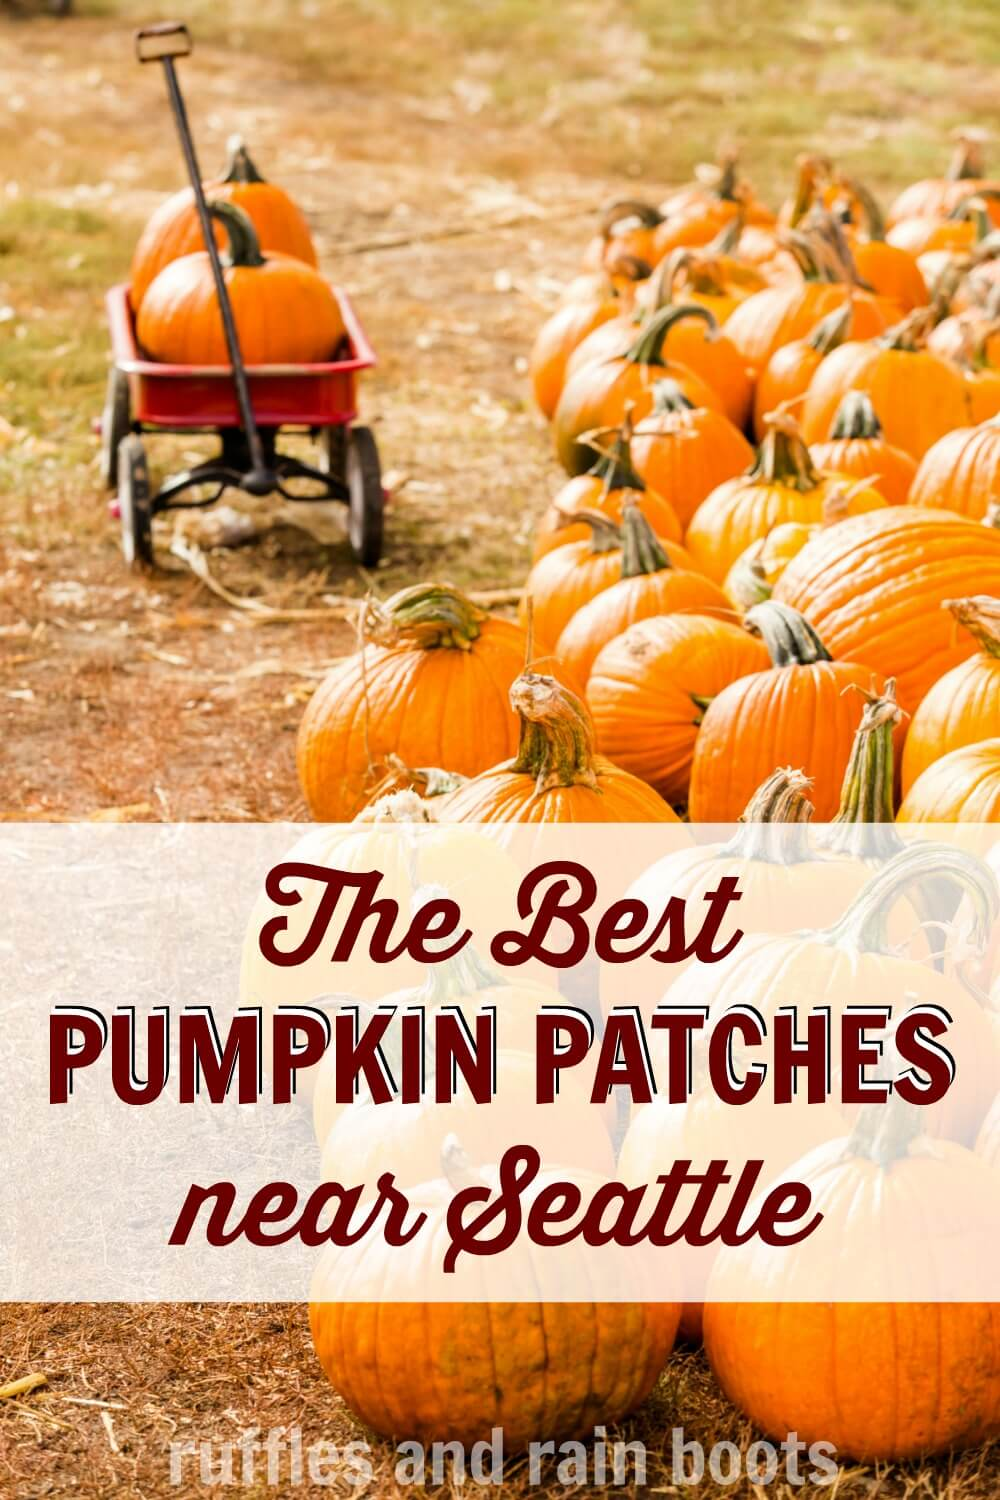 pile of pumpkins next to a red wagon with text which reads the best pumpkin patches near Seattle WA